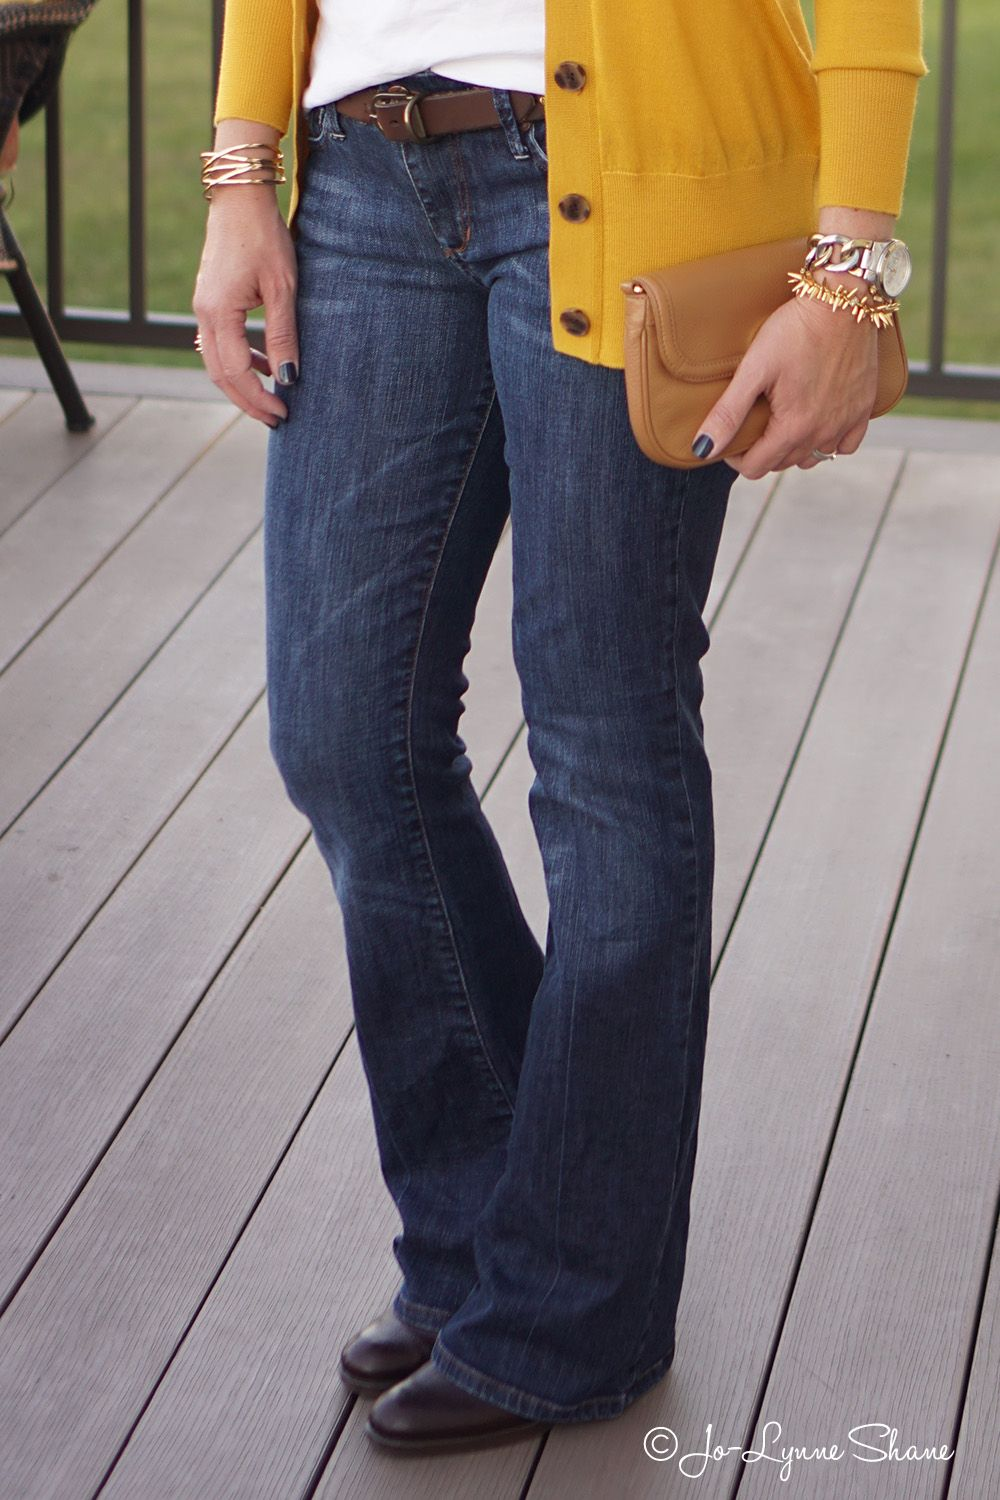 Bootcut jeans with ankle boots